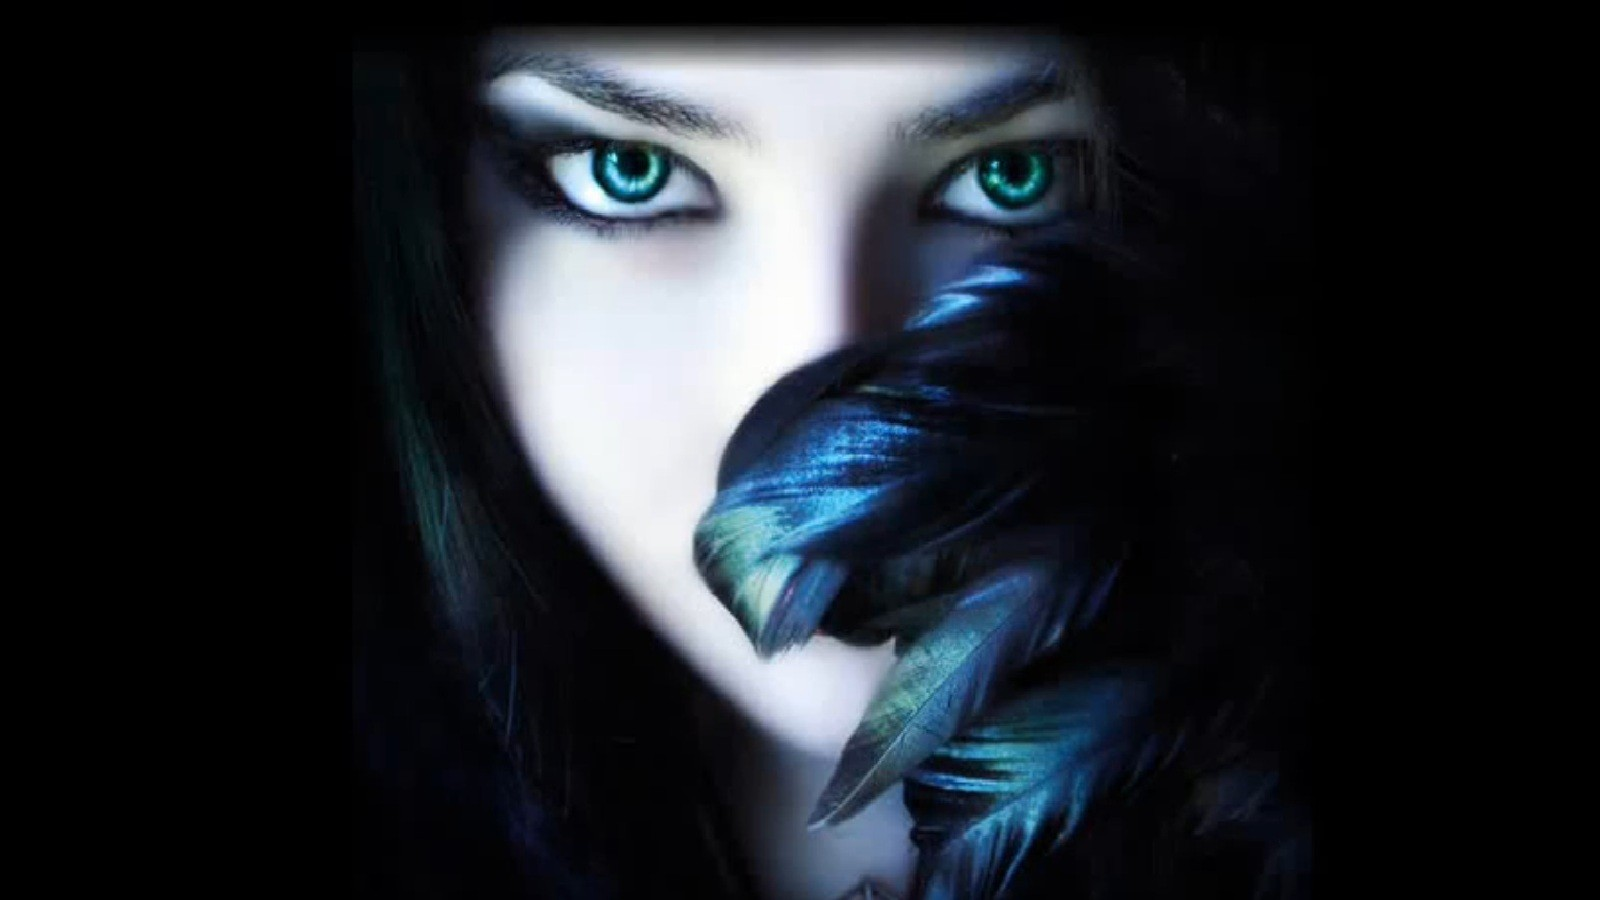 Wallpapers women fantasy eyes blue eyes gothic faces 1600x900